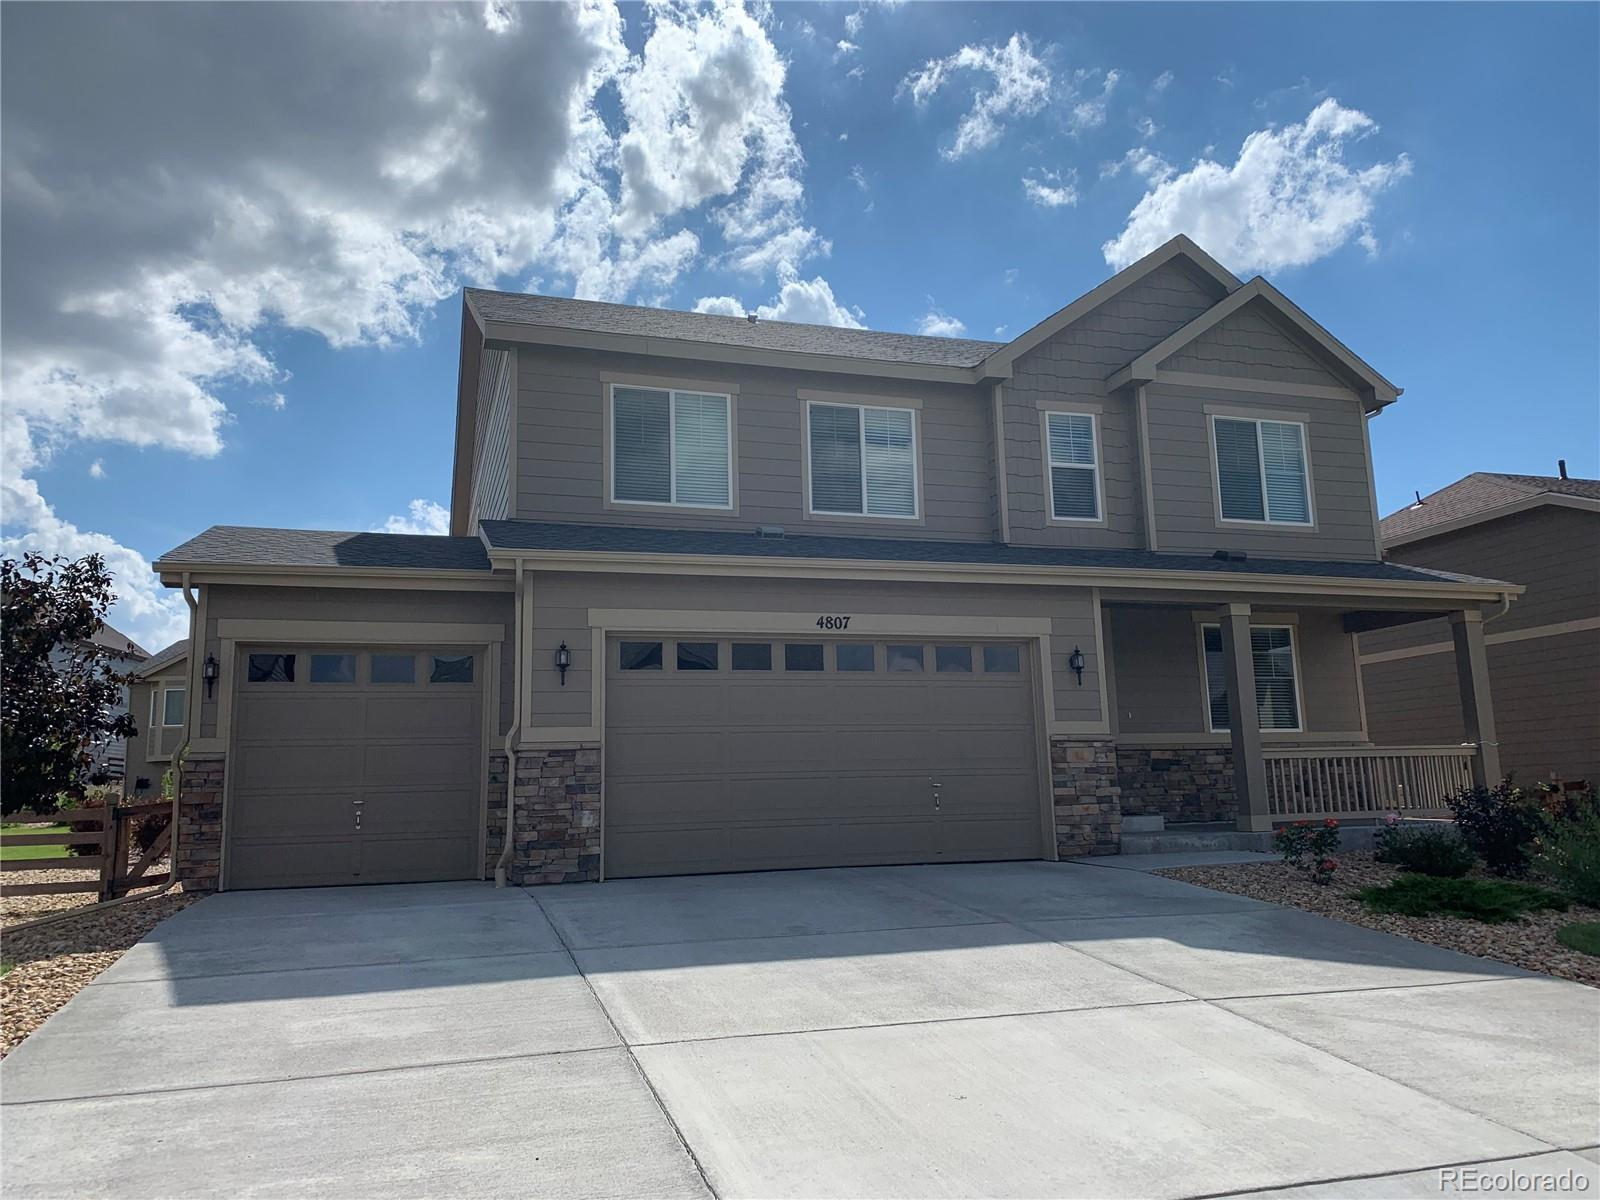 4807 S Rome Way Property Photo - Aurora, CO real estate listing